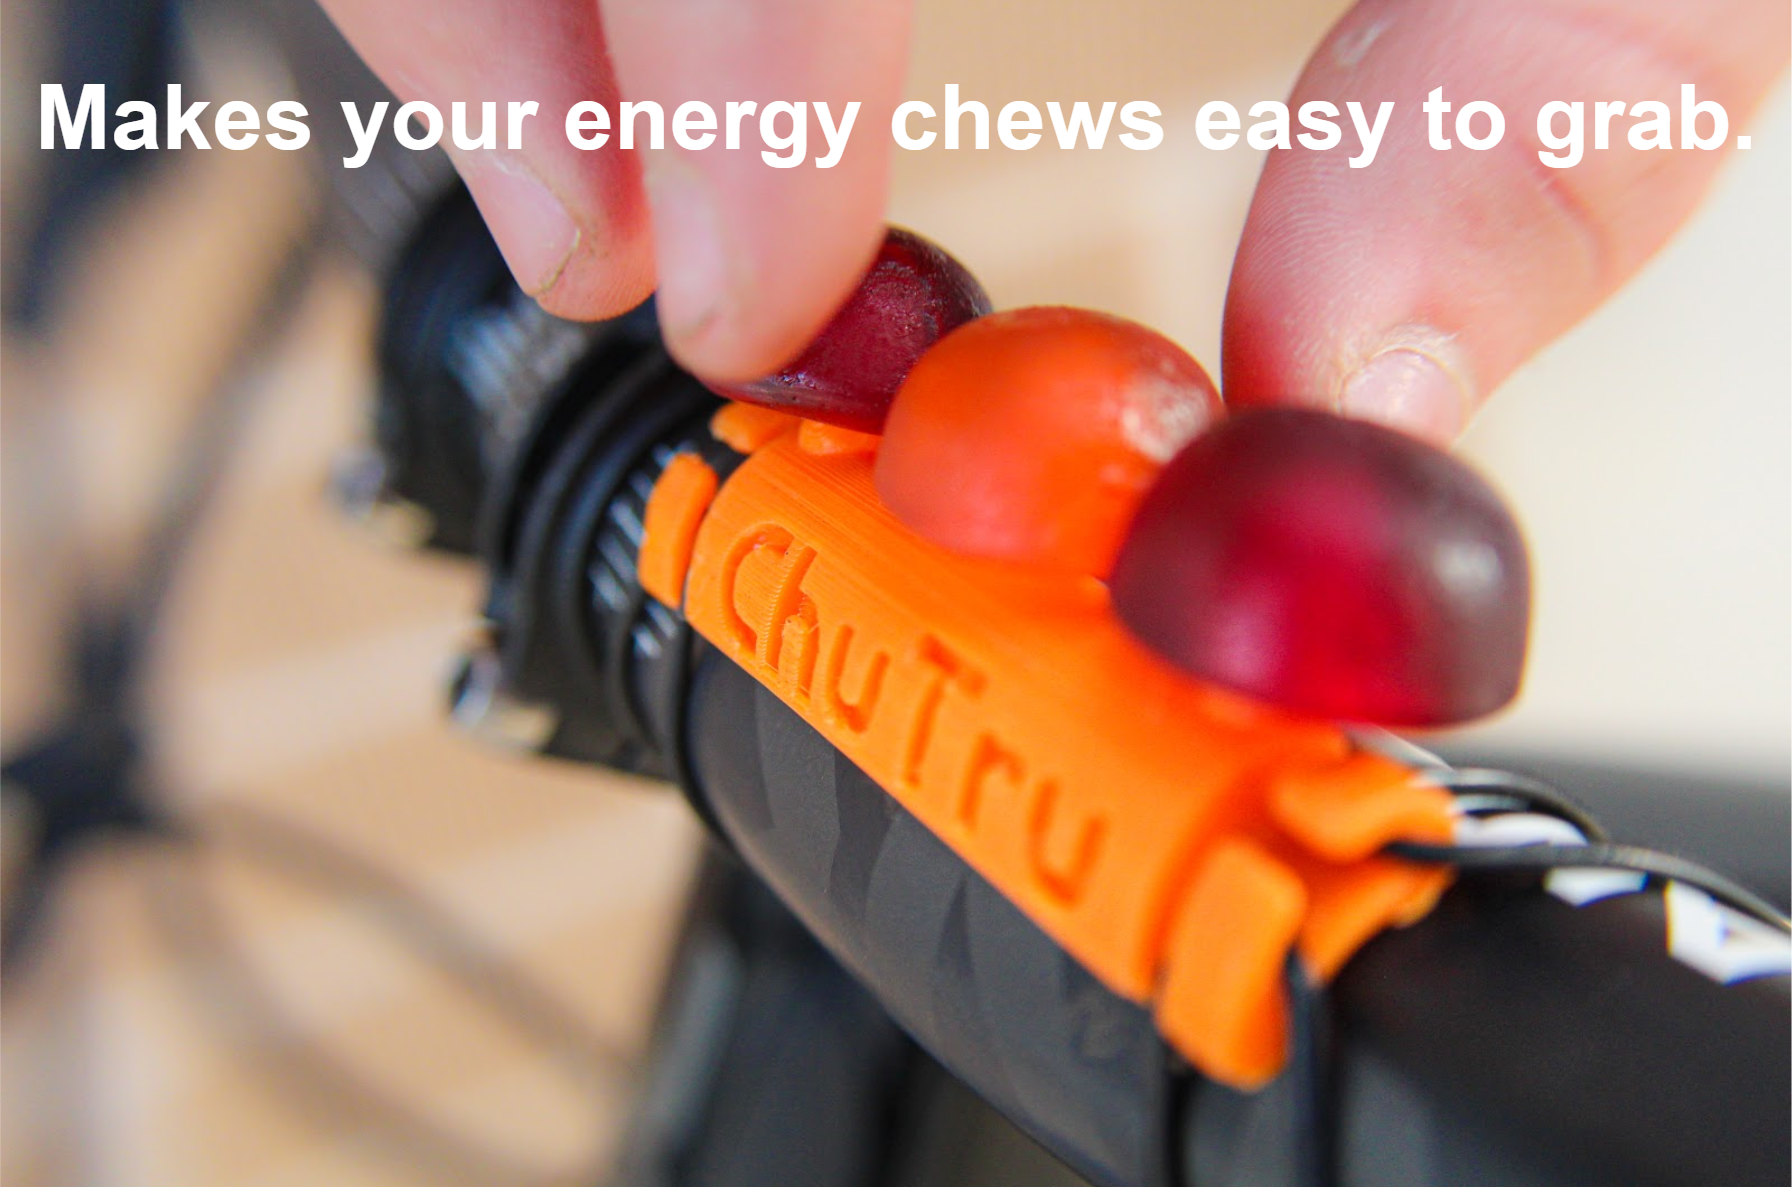 Makes your energy chews easy to grab.